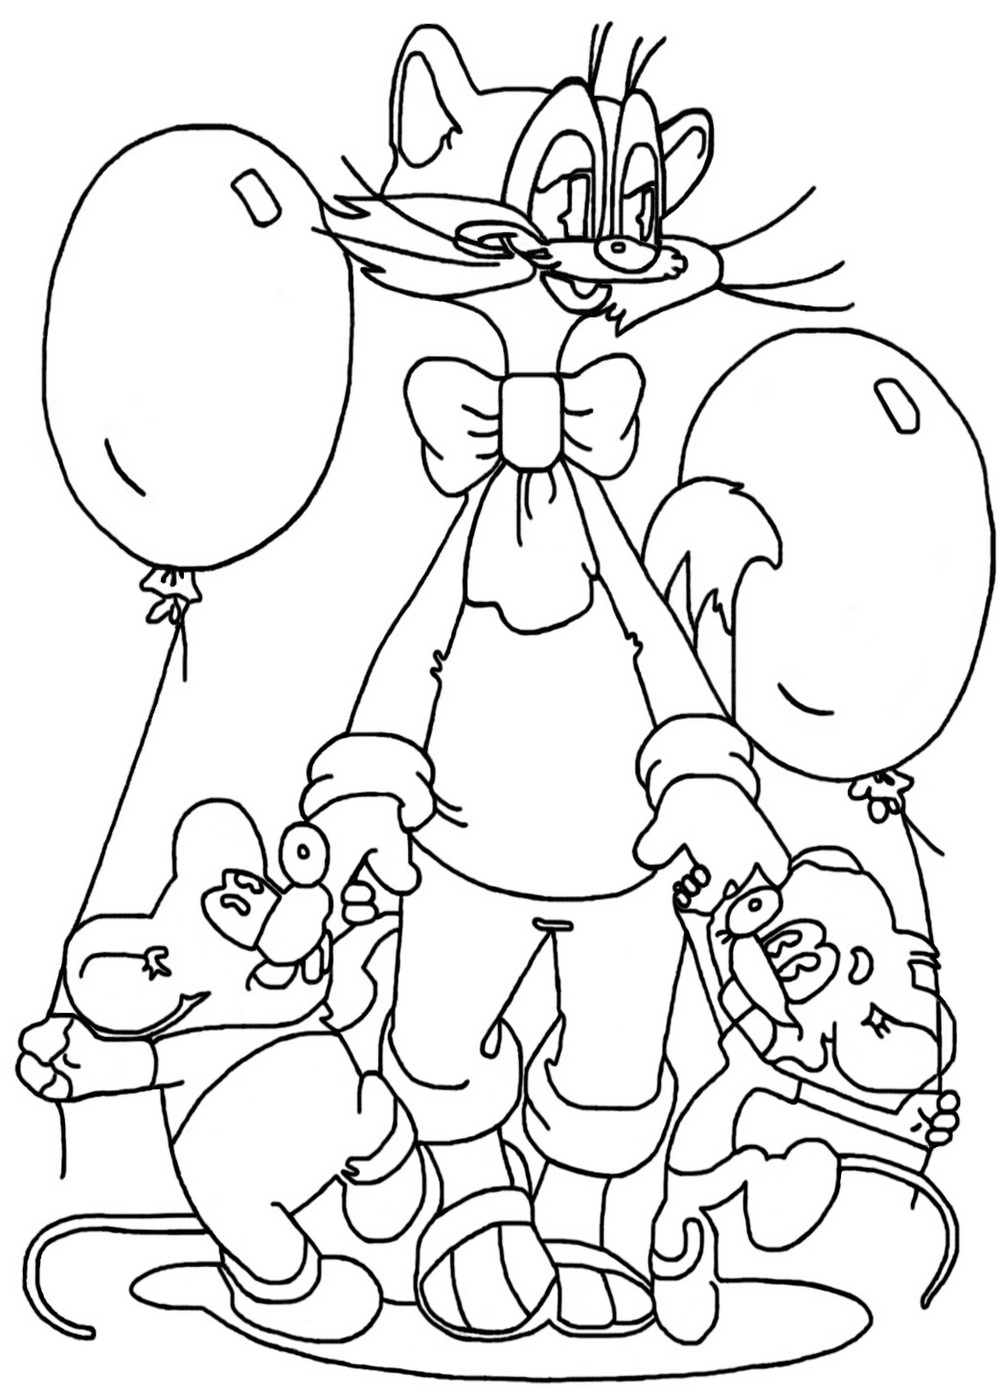 free childrens coloring pages free easy to print owl coloring pages tulamama free coloring childrens pages